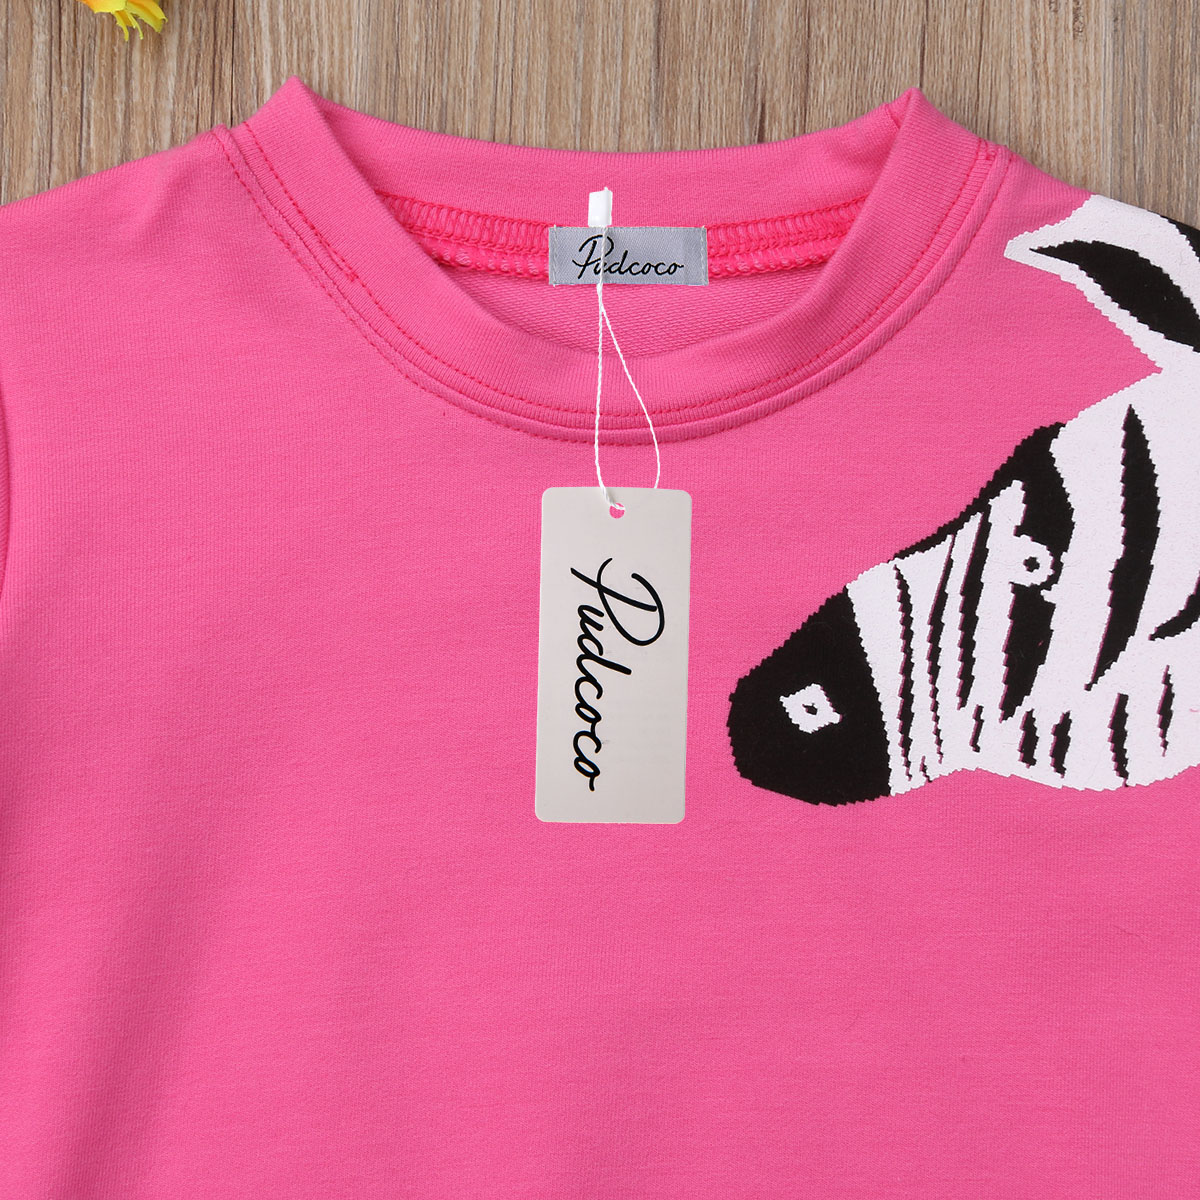 Newborn Baby Girl Clothes Cotton Tassels Top Coat Warm Animla Print Sweatshirt Clothes 1 6T in Tees from Mother Kids